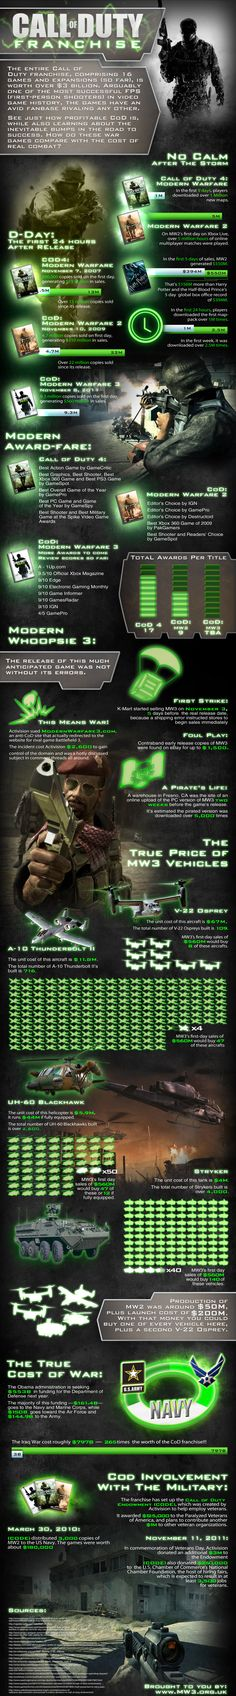 22 Best Call of Duty Images images in 2013 | Call of duty